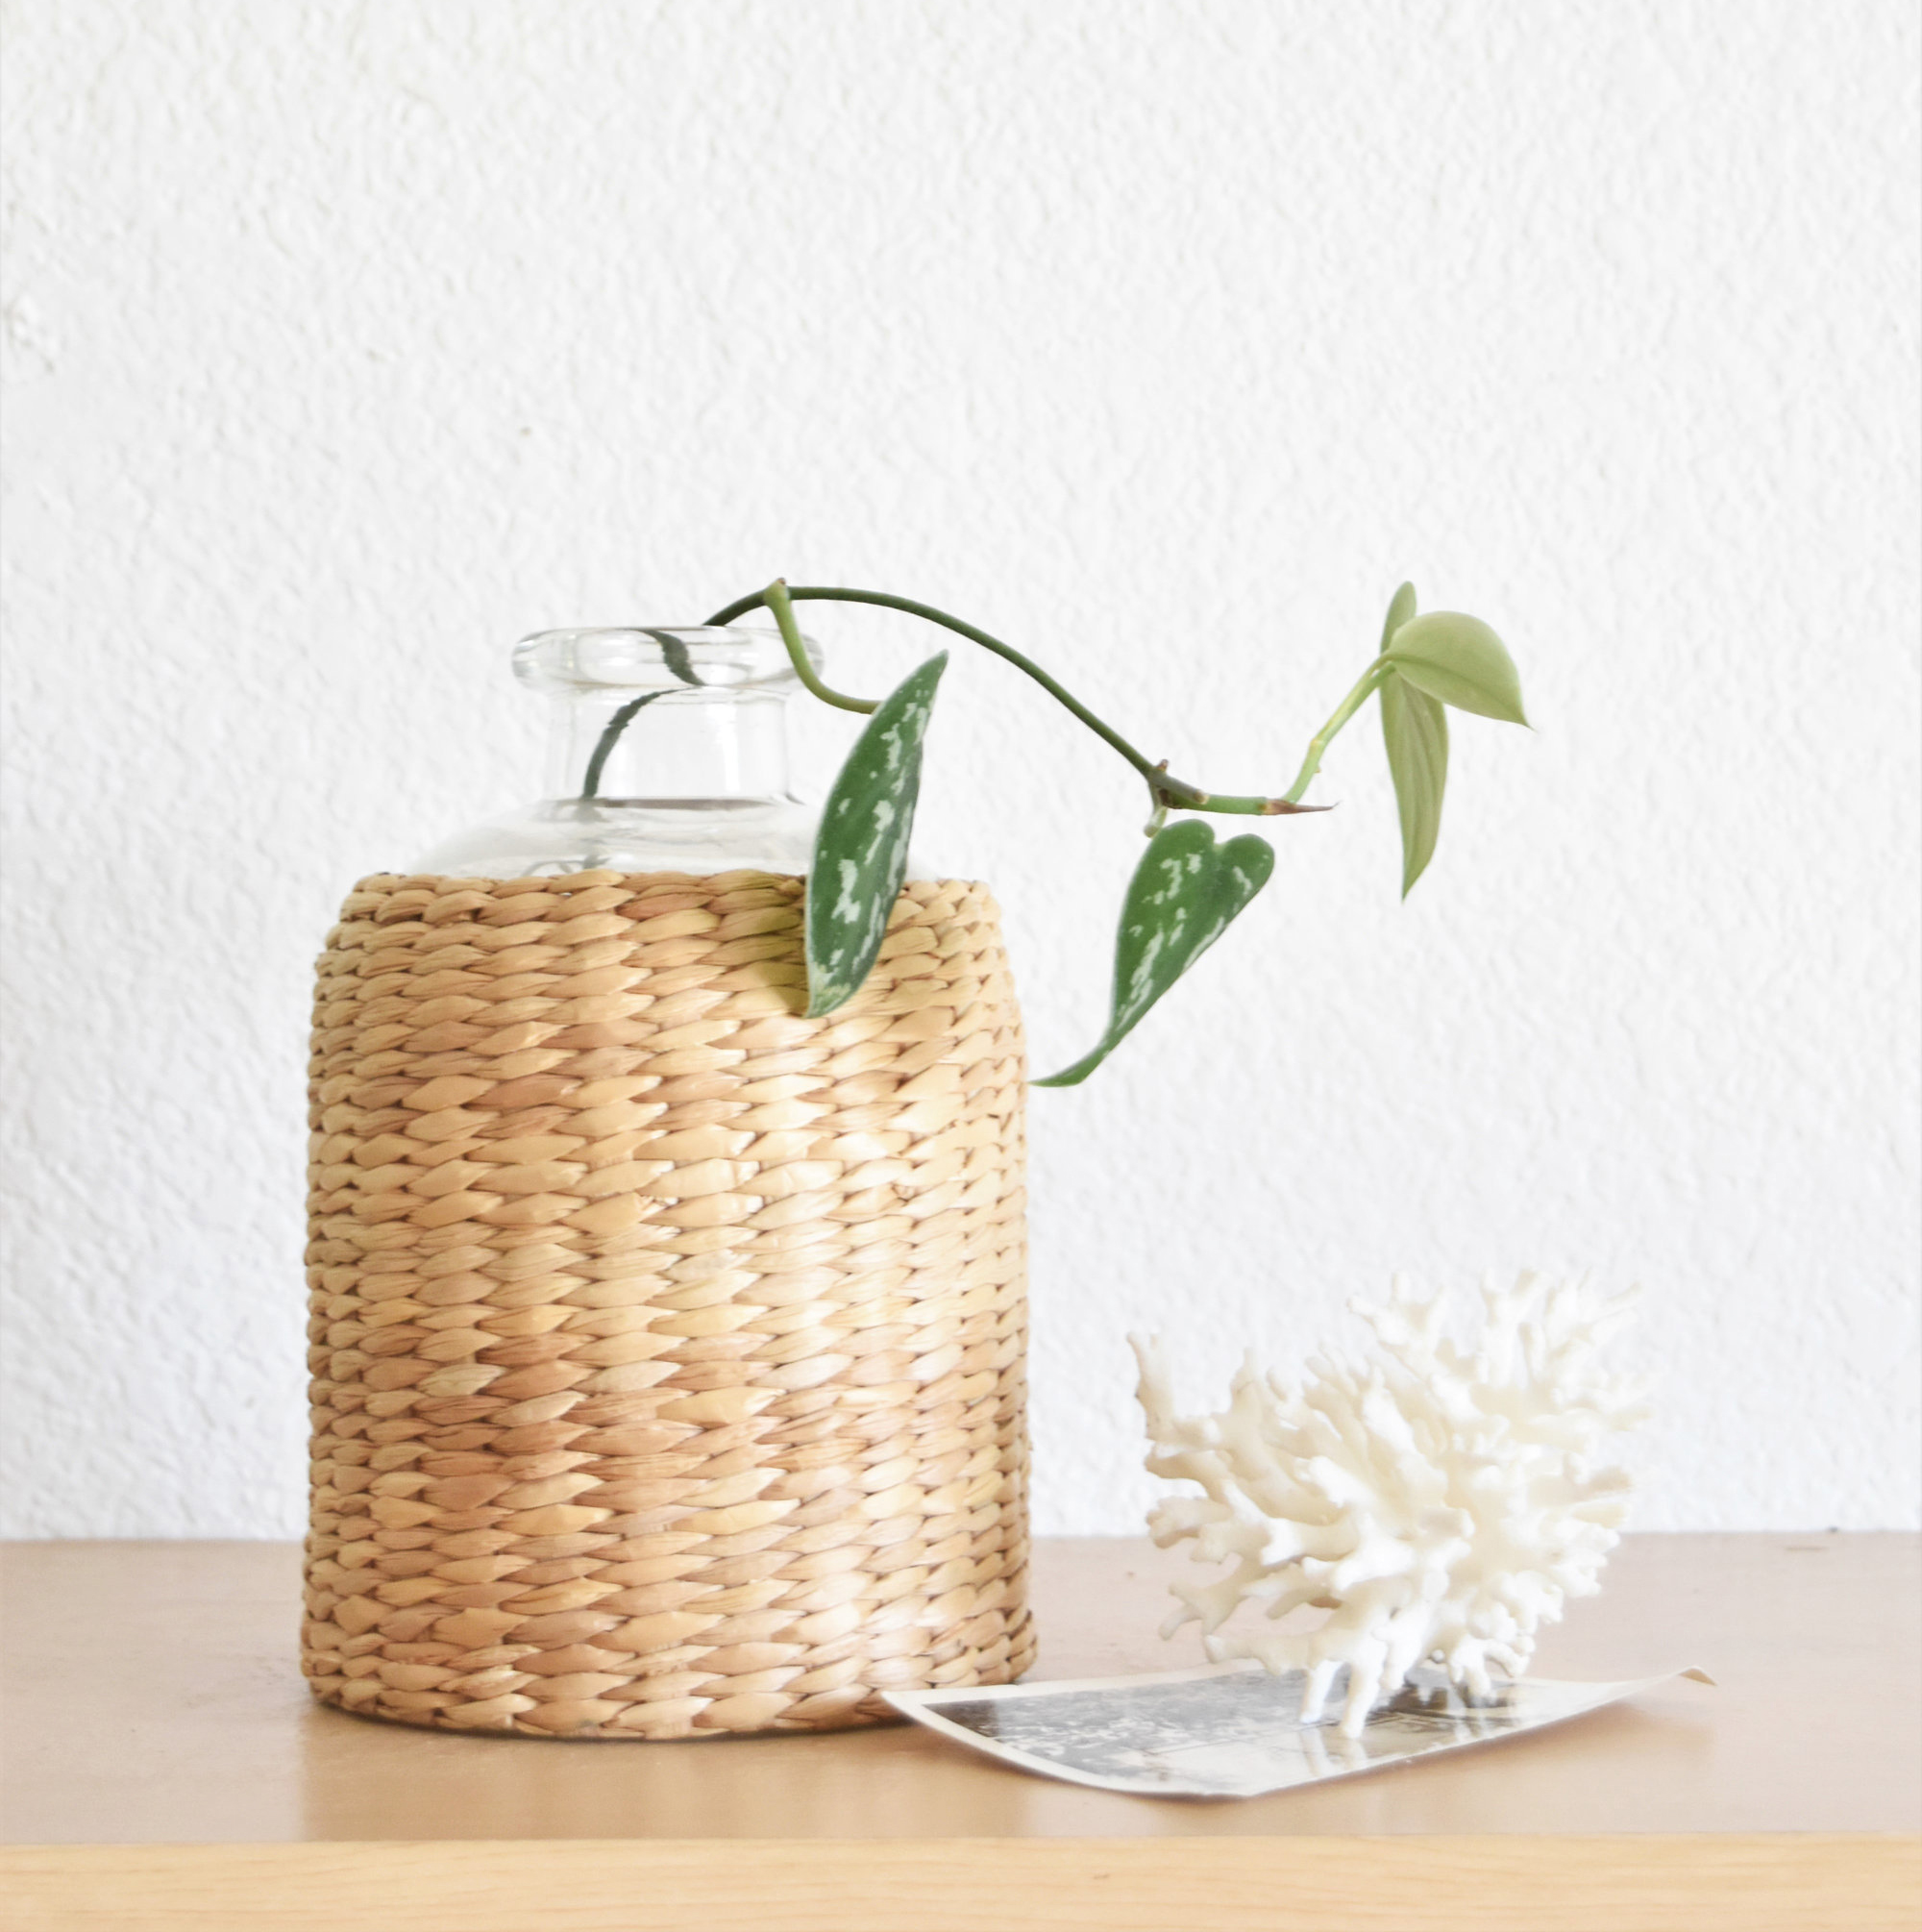 Woven straw bud glass vase